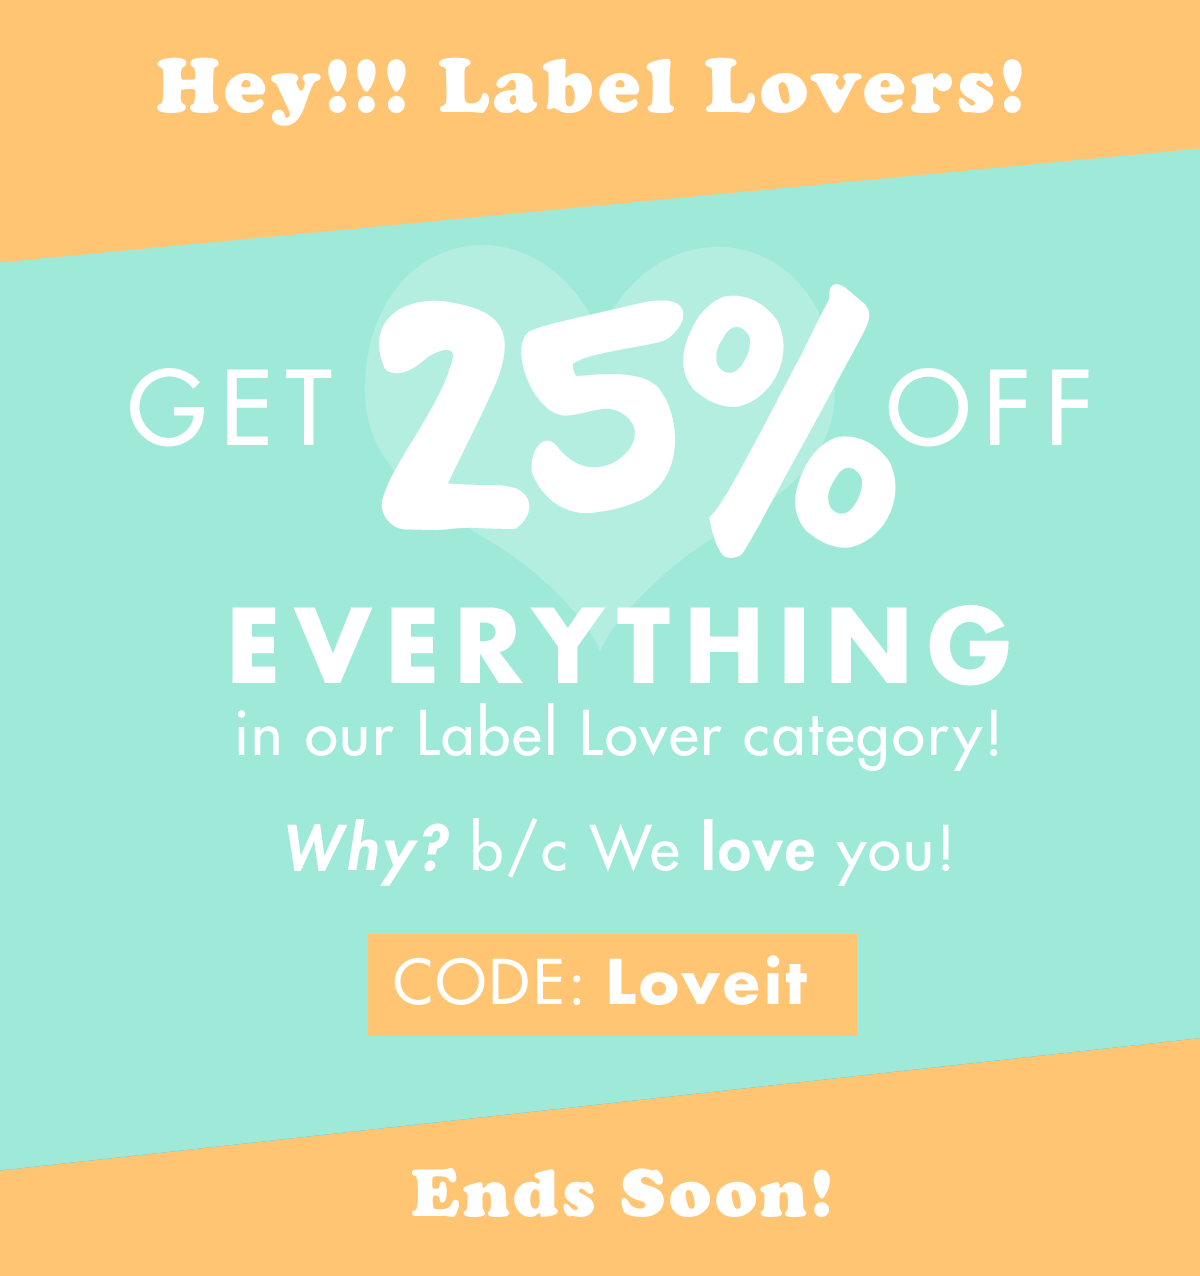 Get 25% off Our Label Love category! Use Code: LOVEIT, Ends Soon